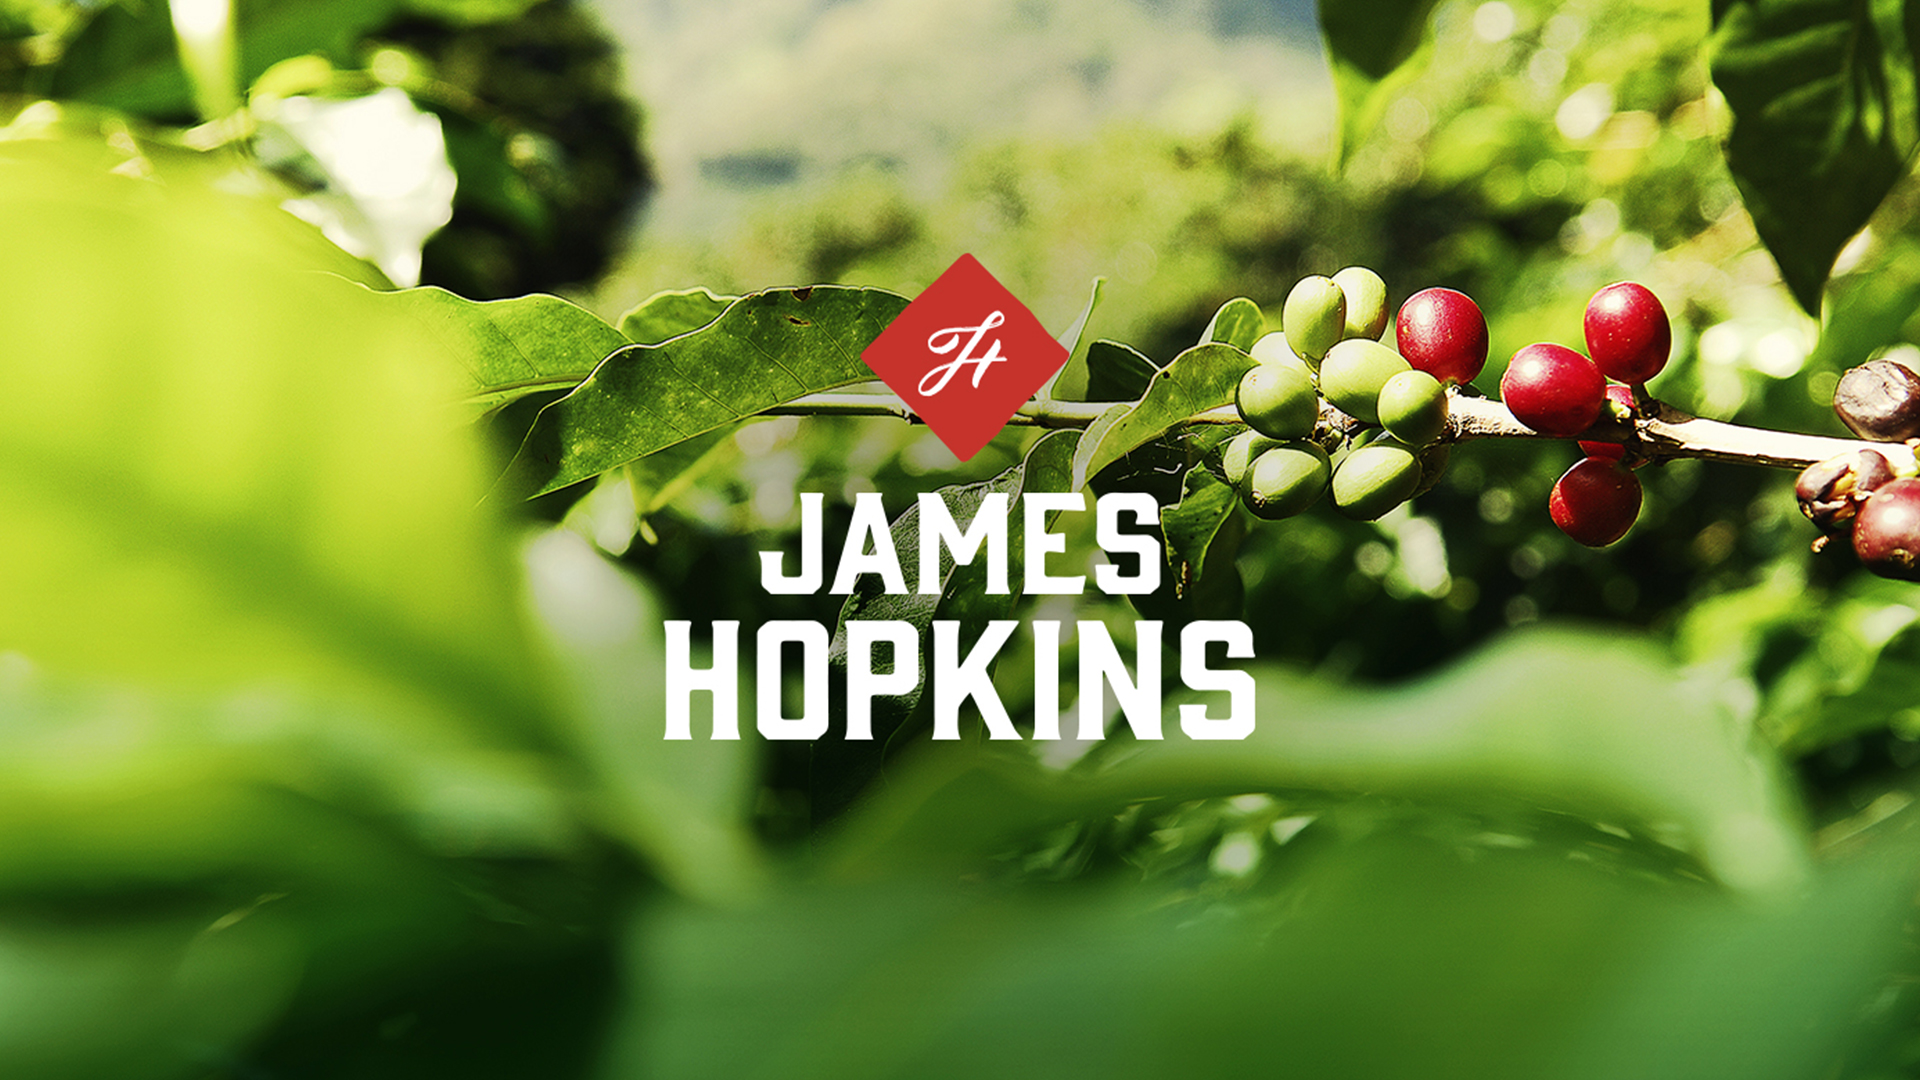 James Hopkins - headerplaat